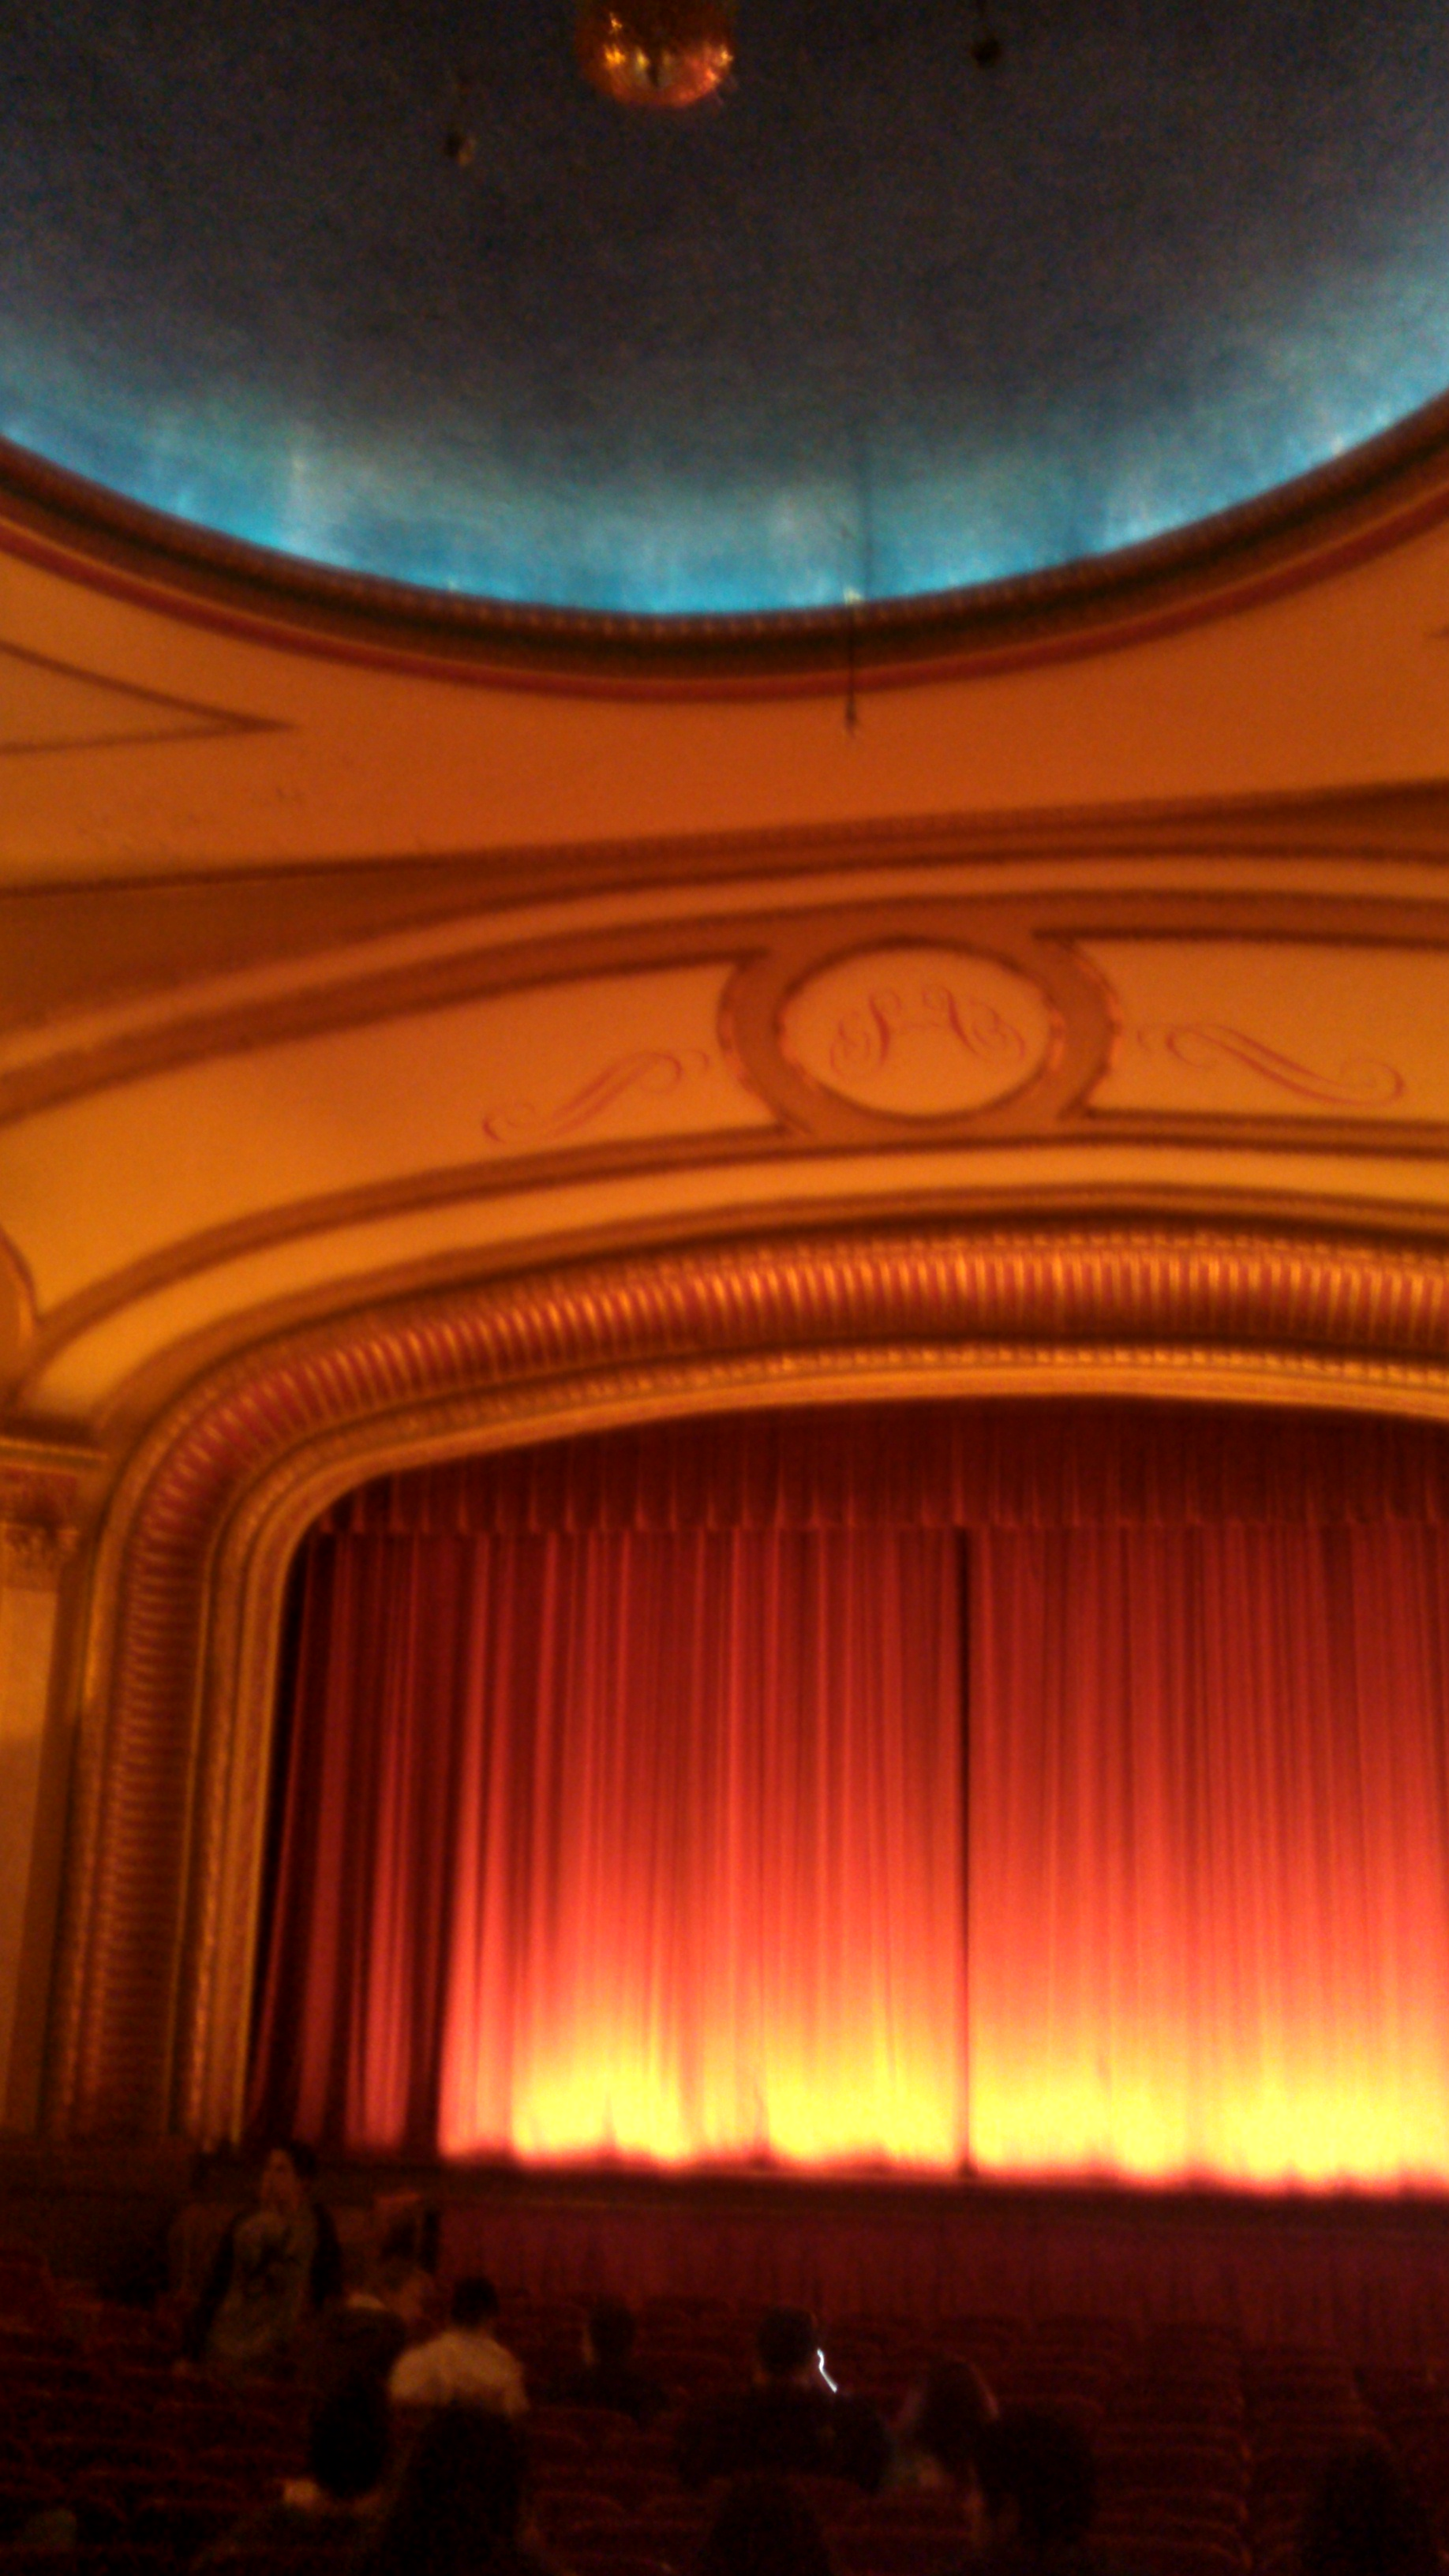 Even if the movie is boring, look up and look around inside the theater to appreciate how nice movie houses used to be.